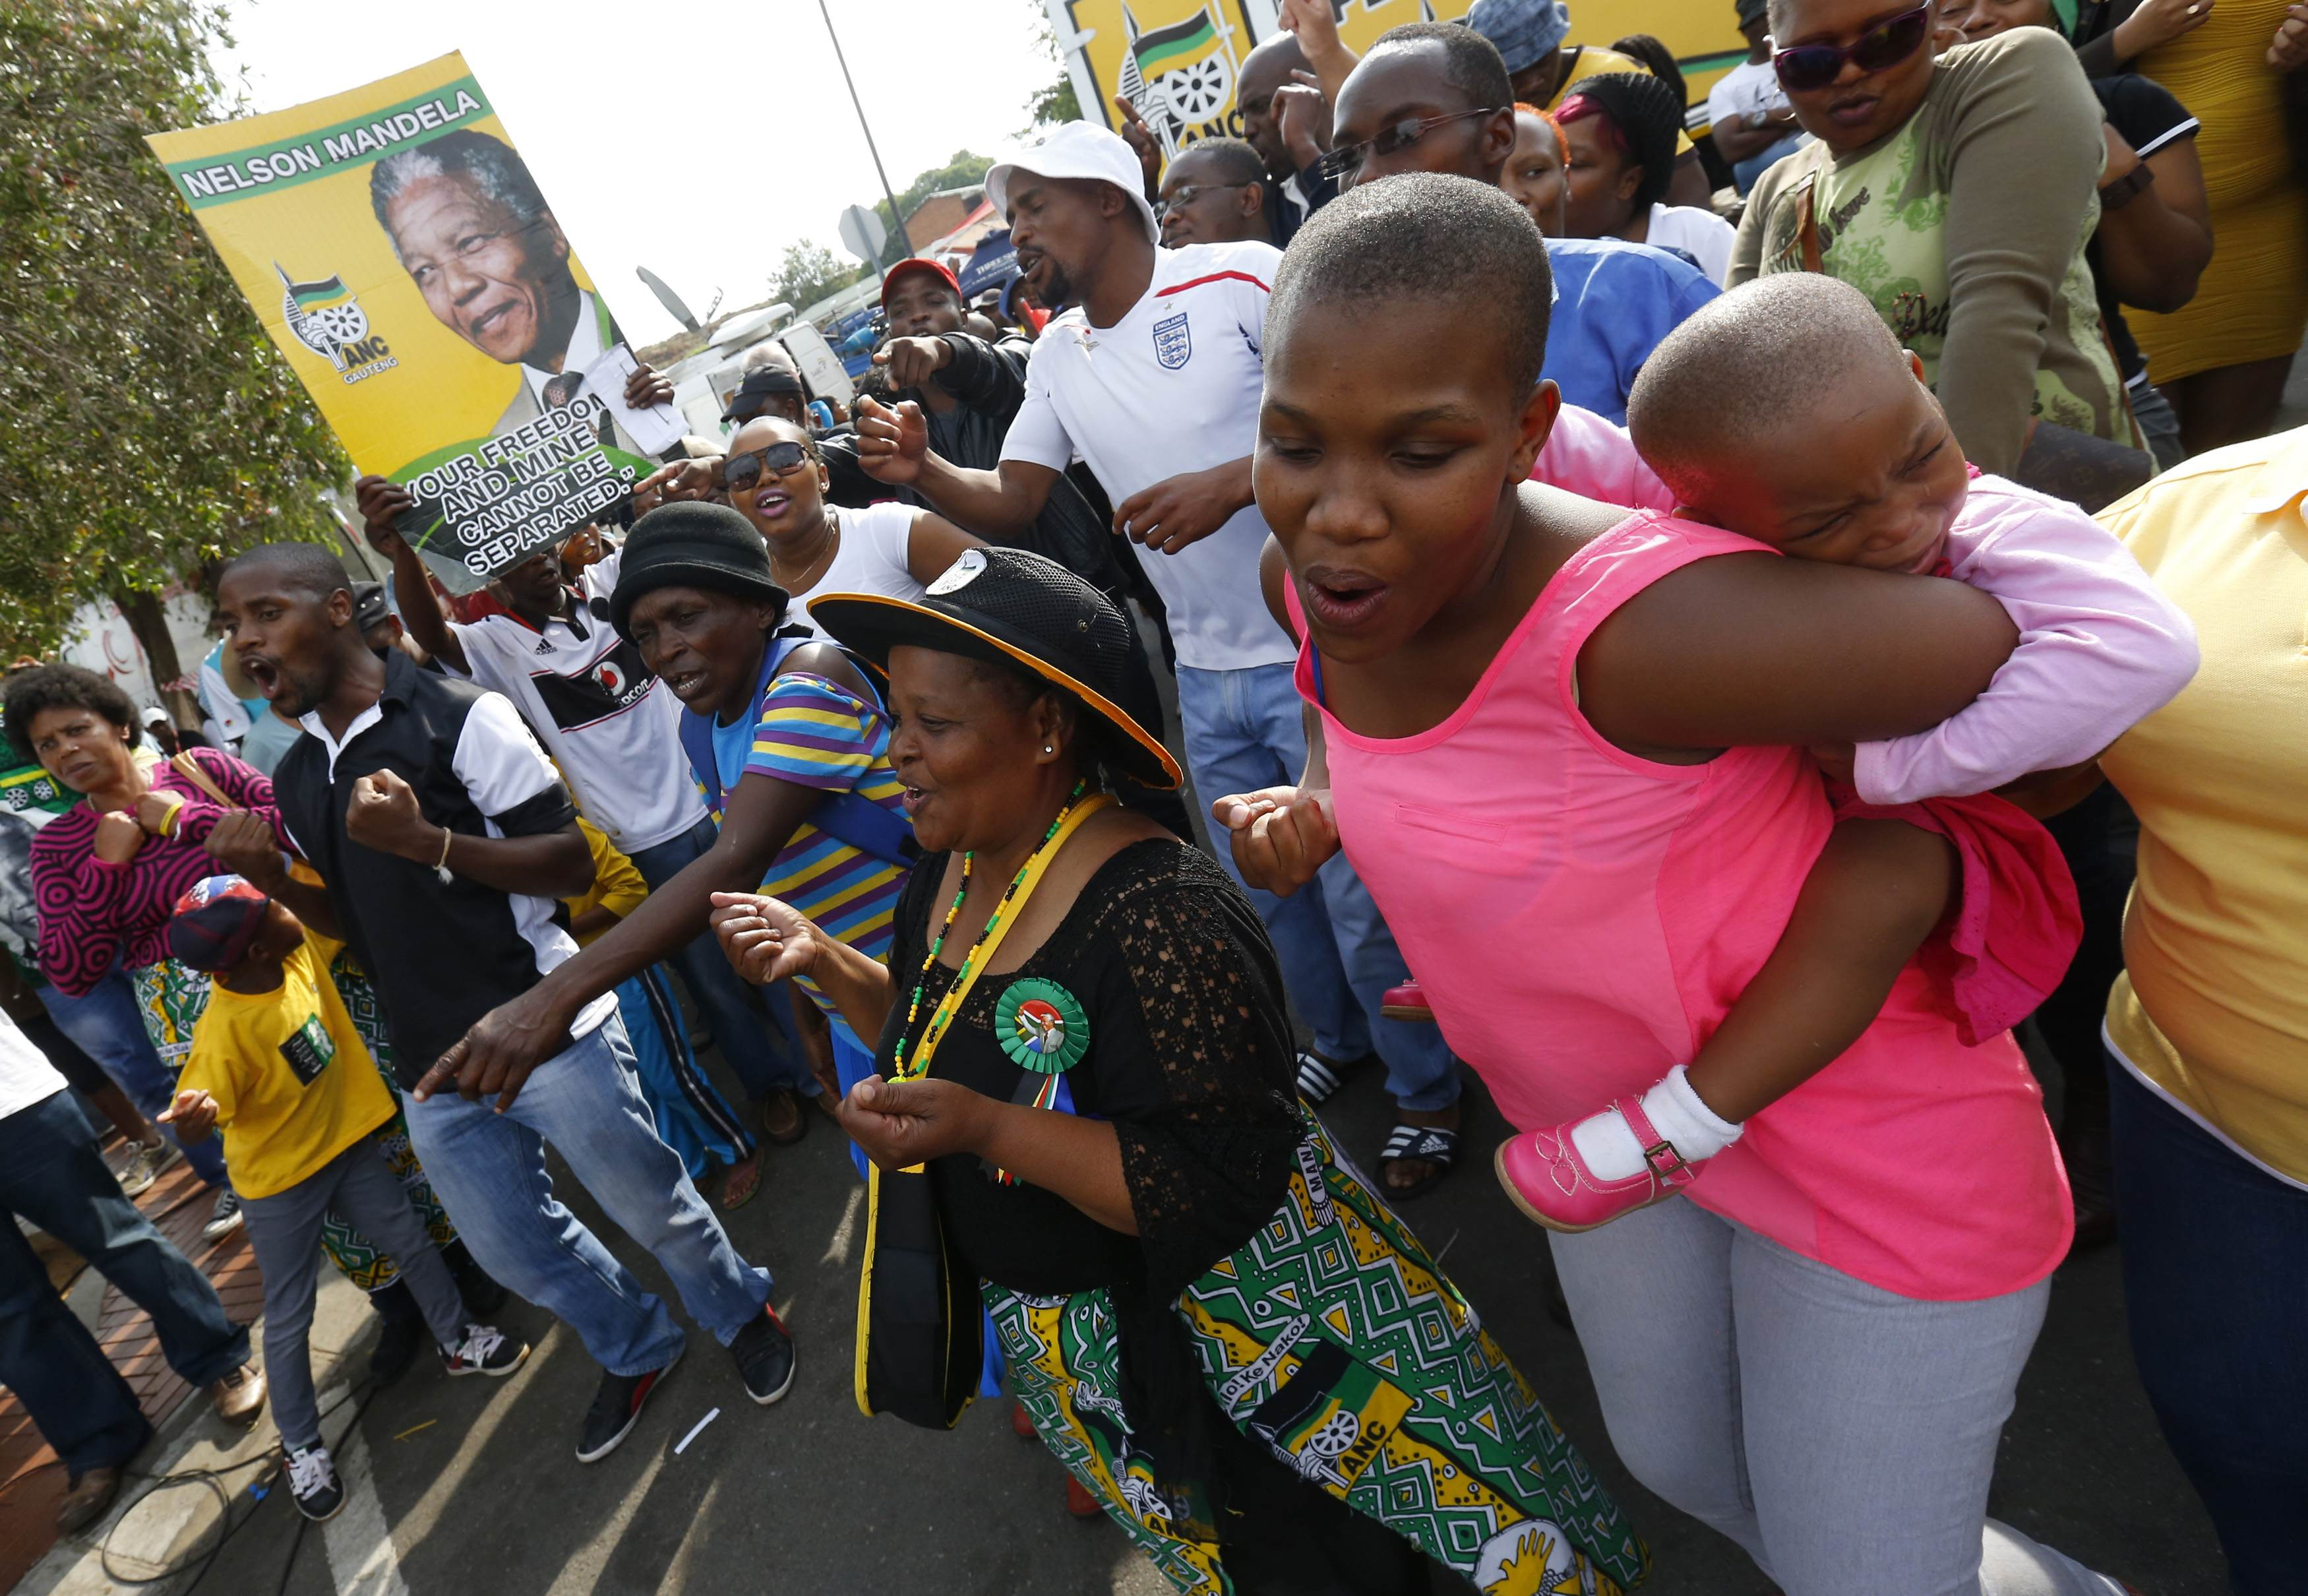 People dance during a gathering of mourners on Vilakazi Street in Soweto where the former South African President Nelson Mandela resided when he lived in the township